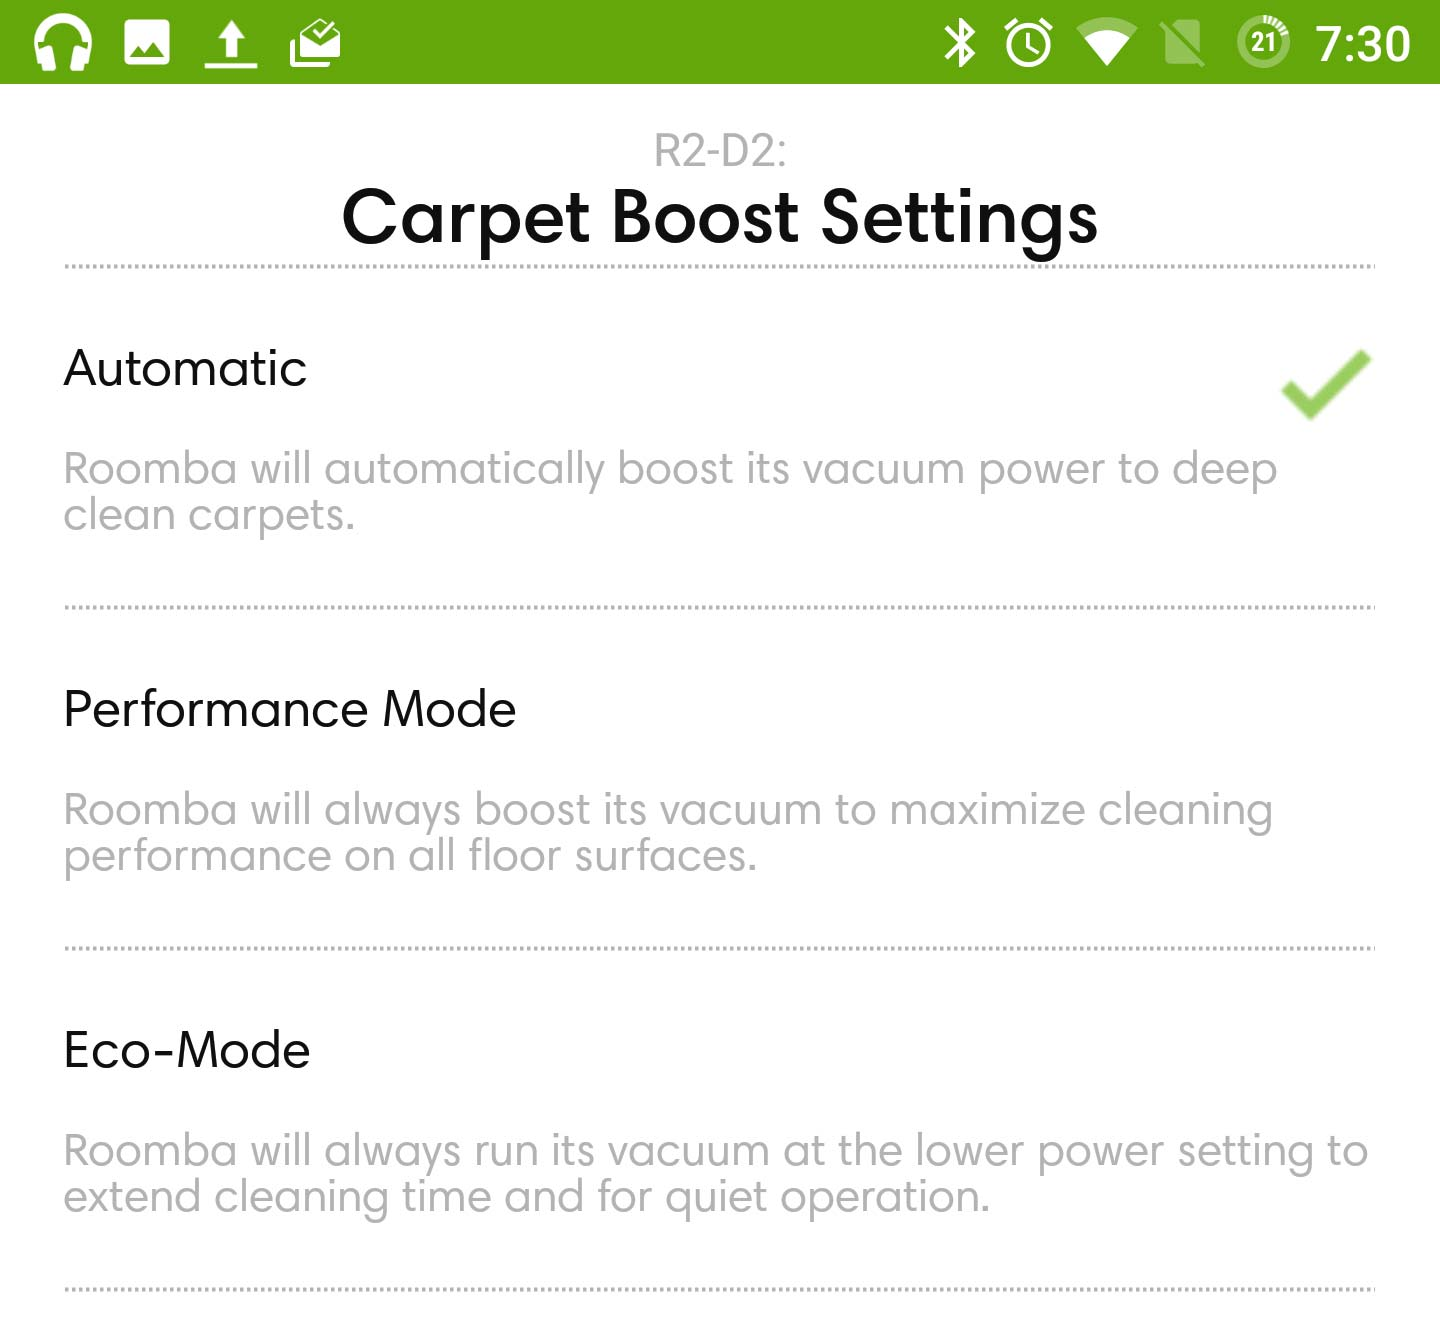 iRobot Roomba 980 carpet boost settings